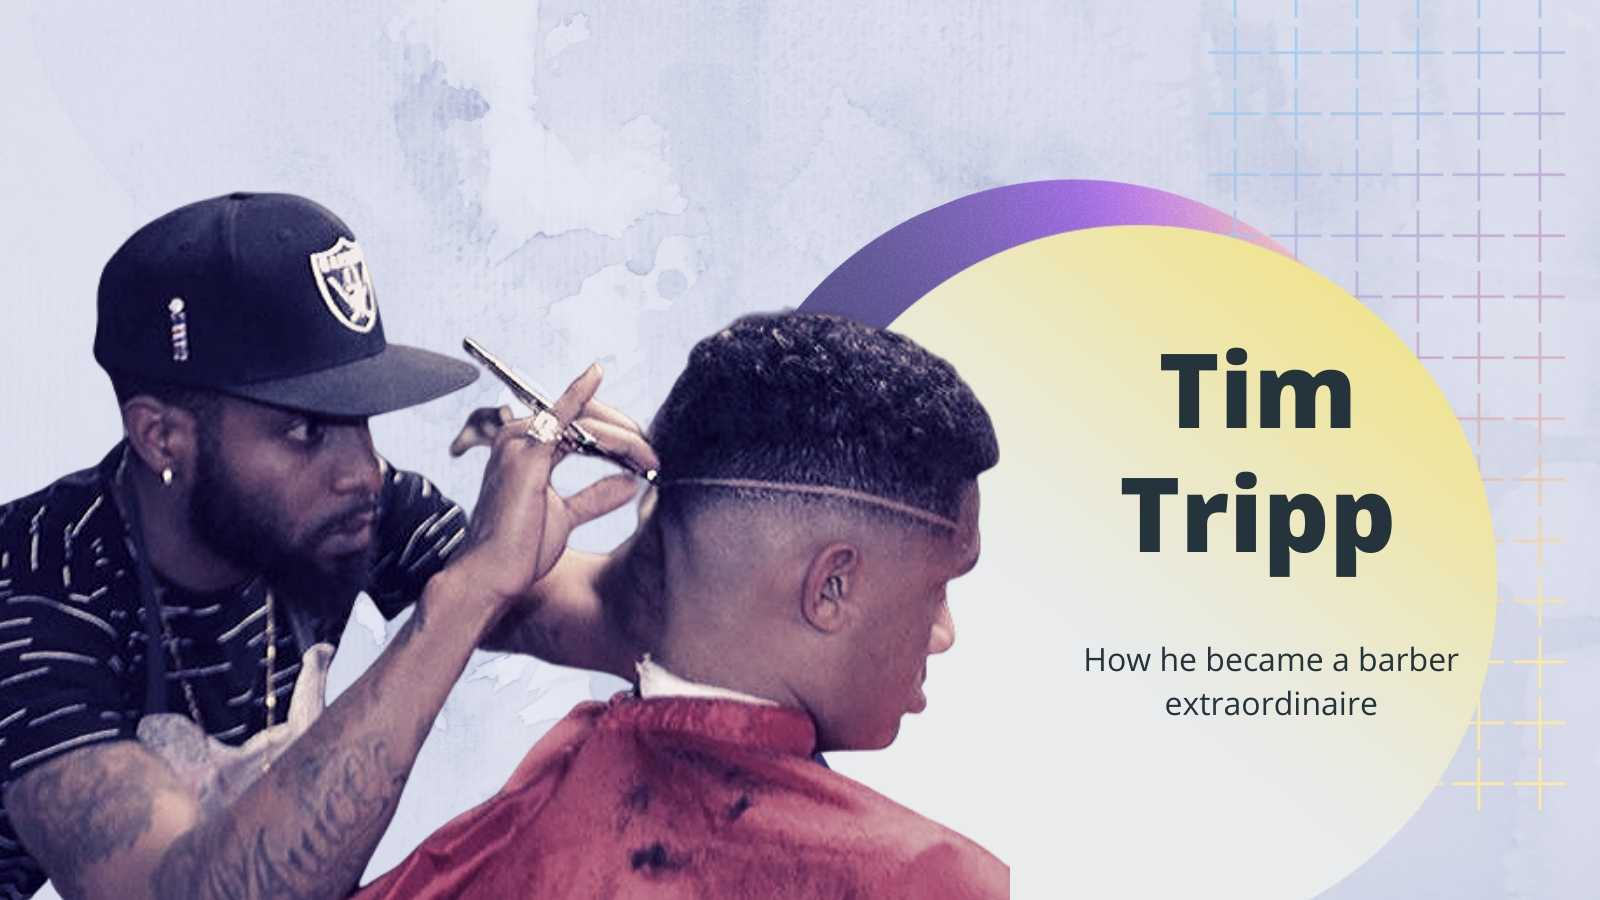 Tim Tripp: How he became a barber extraordinaire